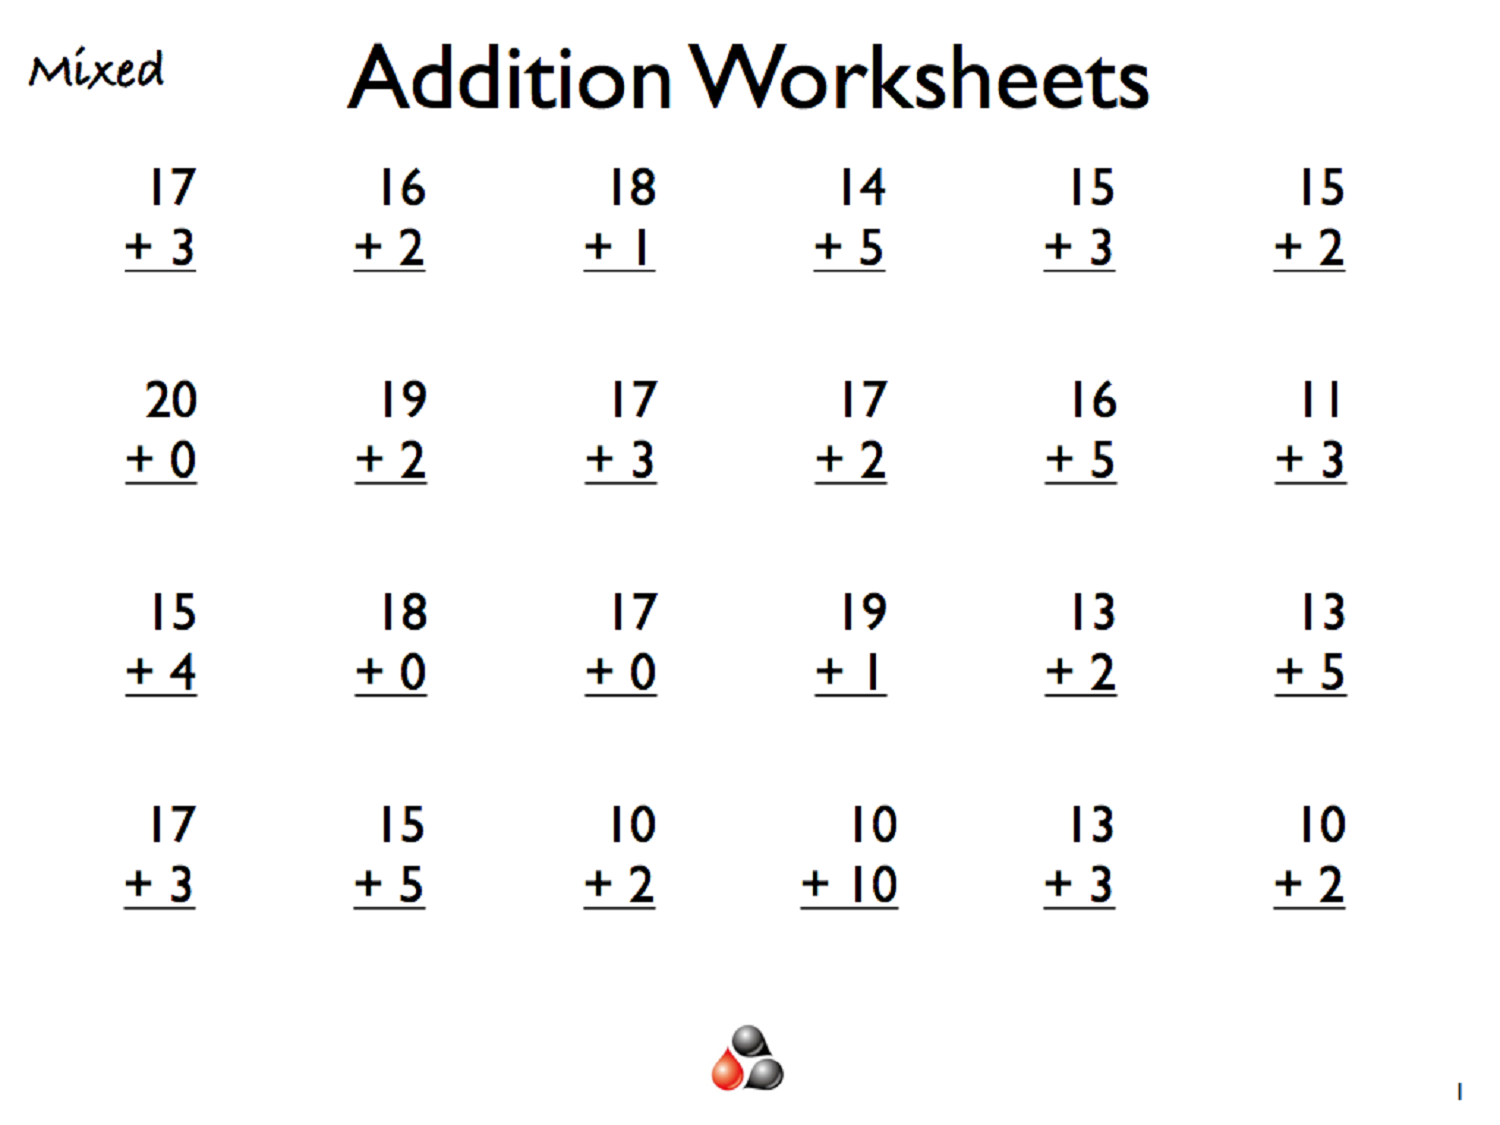 Addition For Worksheets For Grade 1 Is Helpful Educative Media – Math for Grade 1 Printable Worksheet